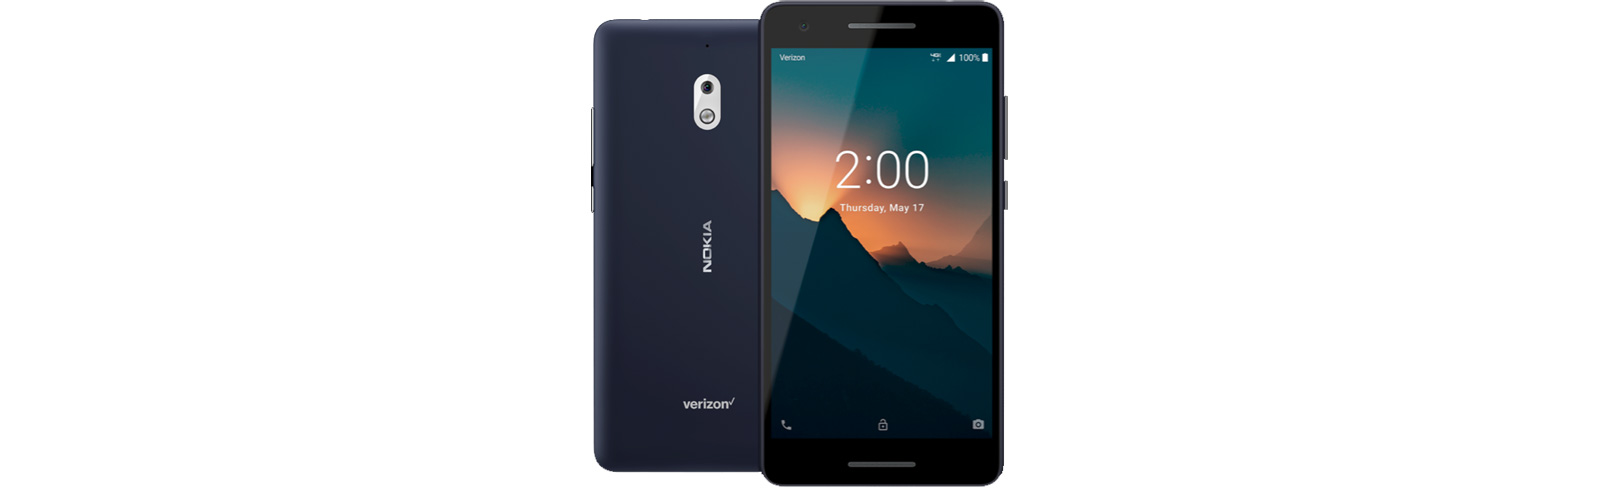 HMD Global launches the Nokia 2.1 in the US via Verizon, names it Nokia 2 V